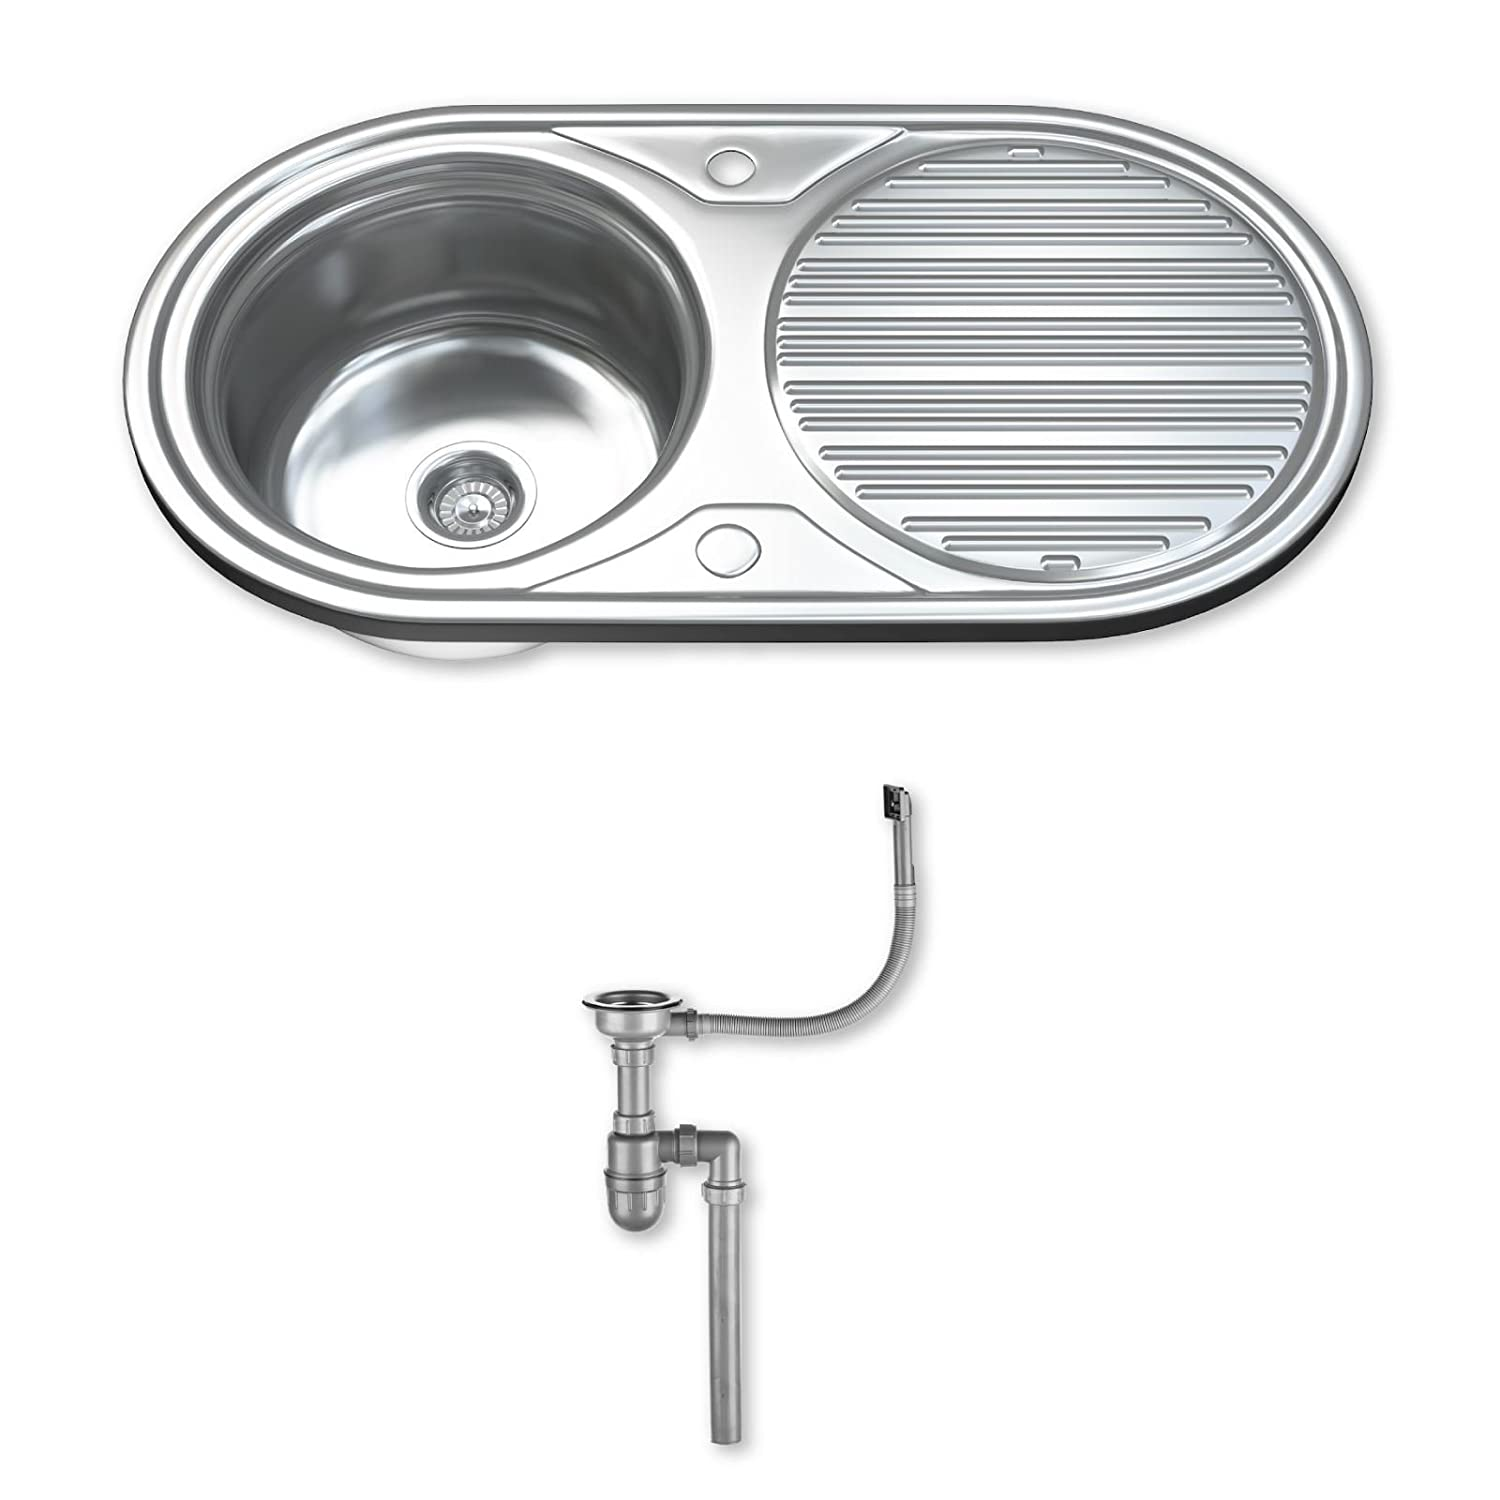 Dihl KS-1062-WST1 1.0 Single Bowl Stainless Steel Kitchen Sink with Drainer and Waste - Chrome